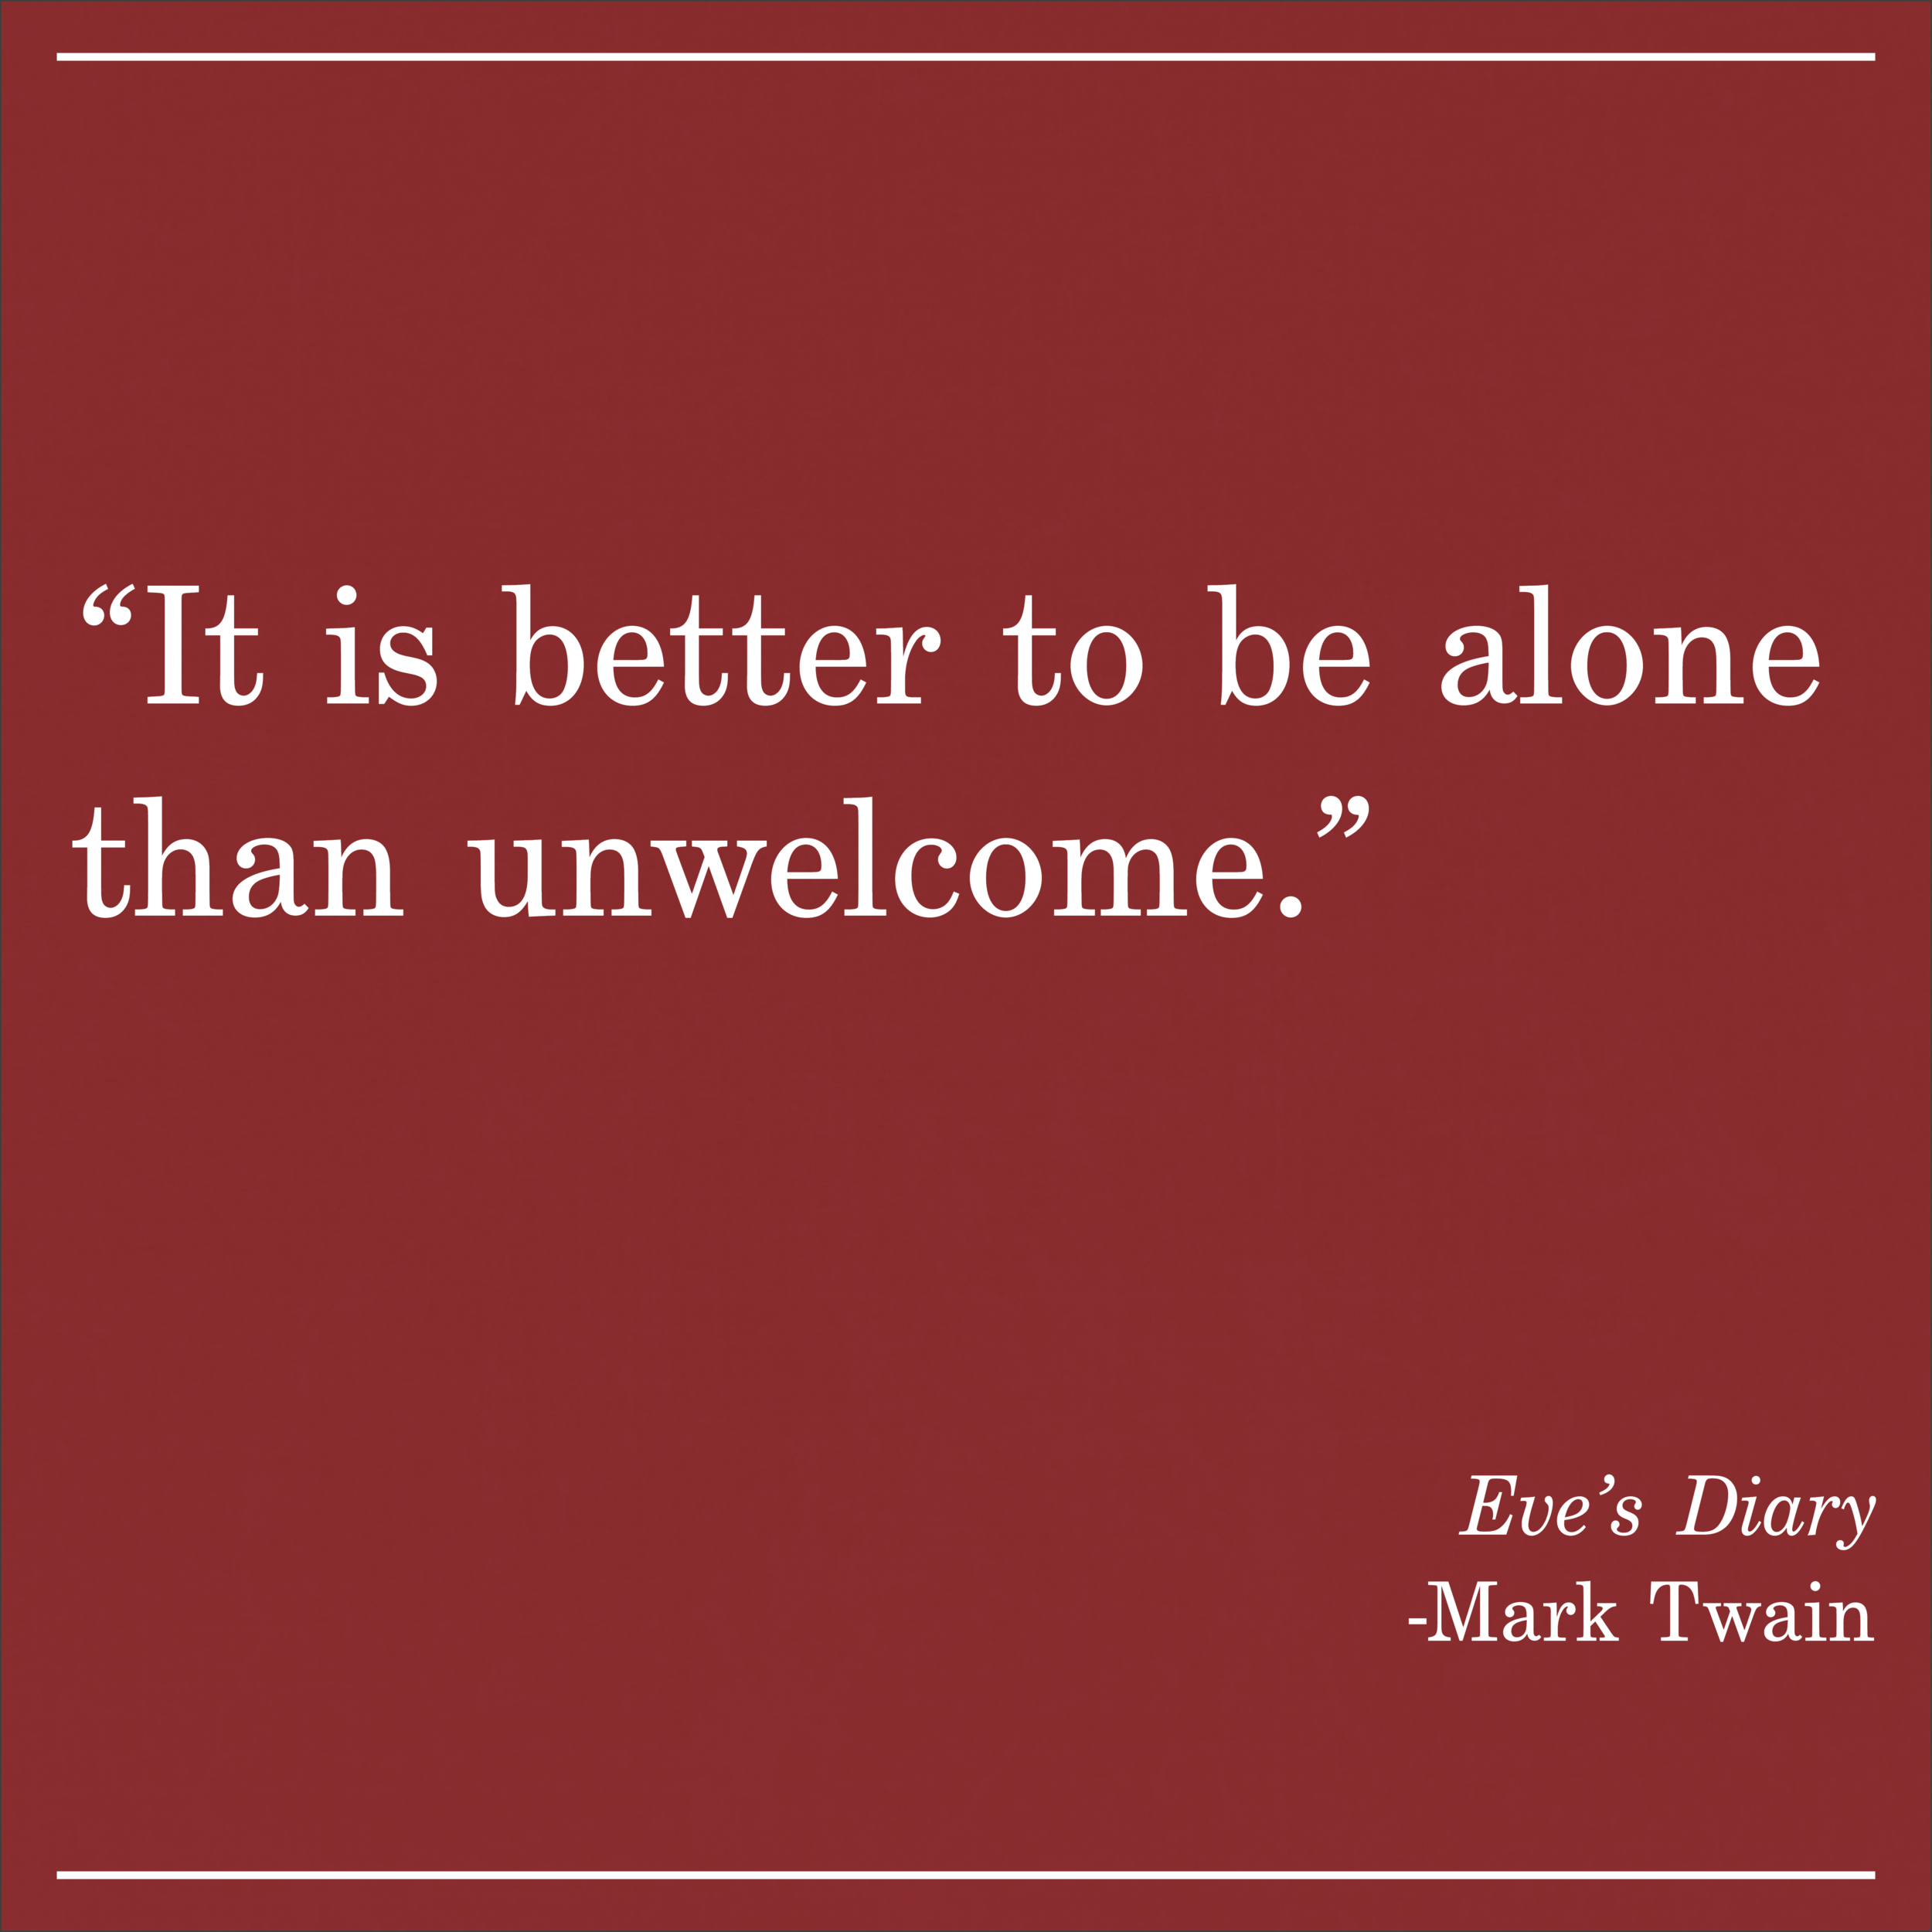 Daily Quote Eve's Diary by Mark Twain